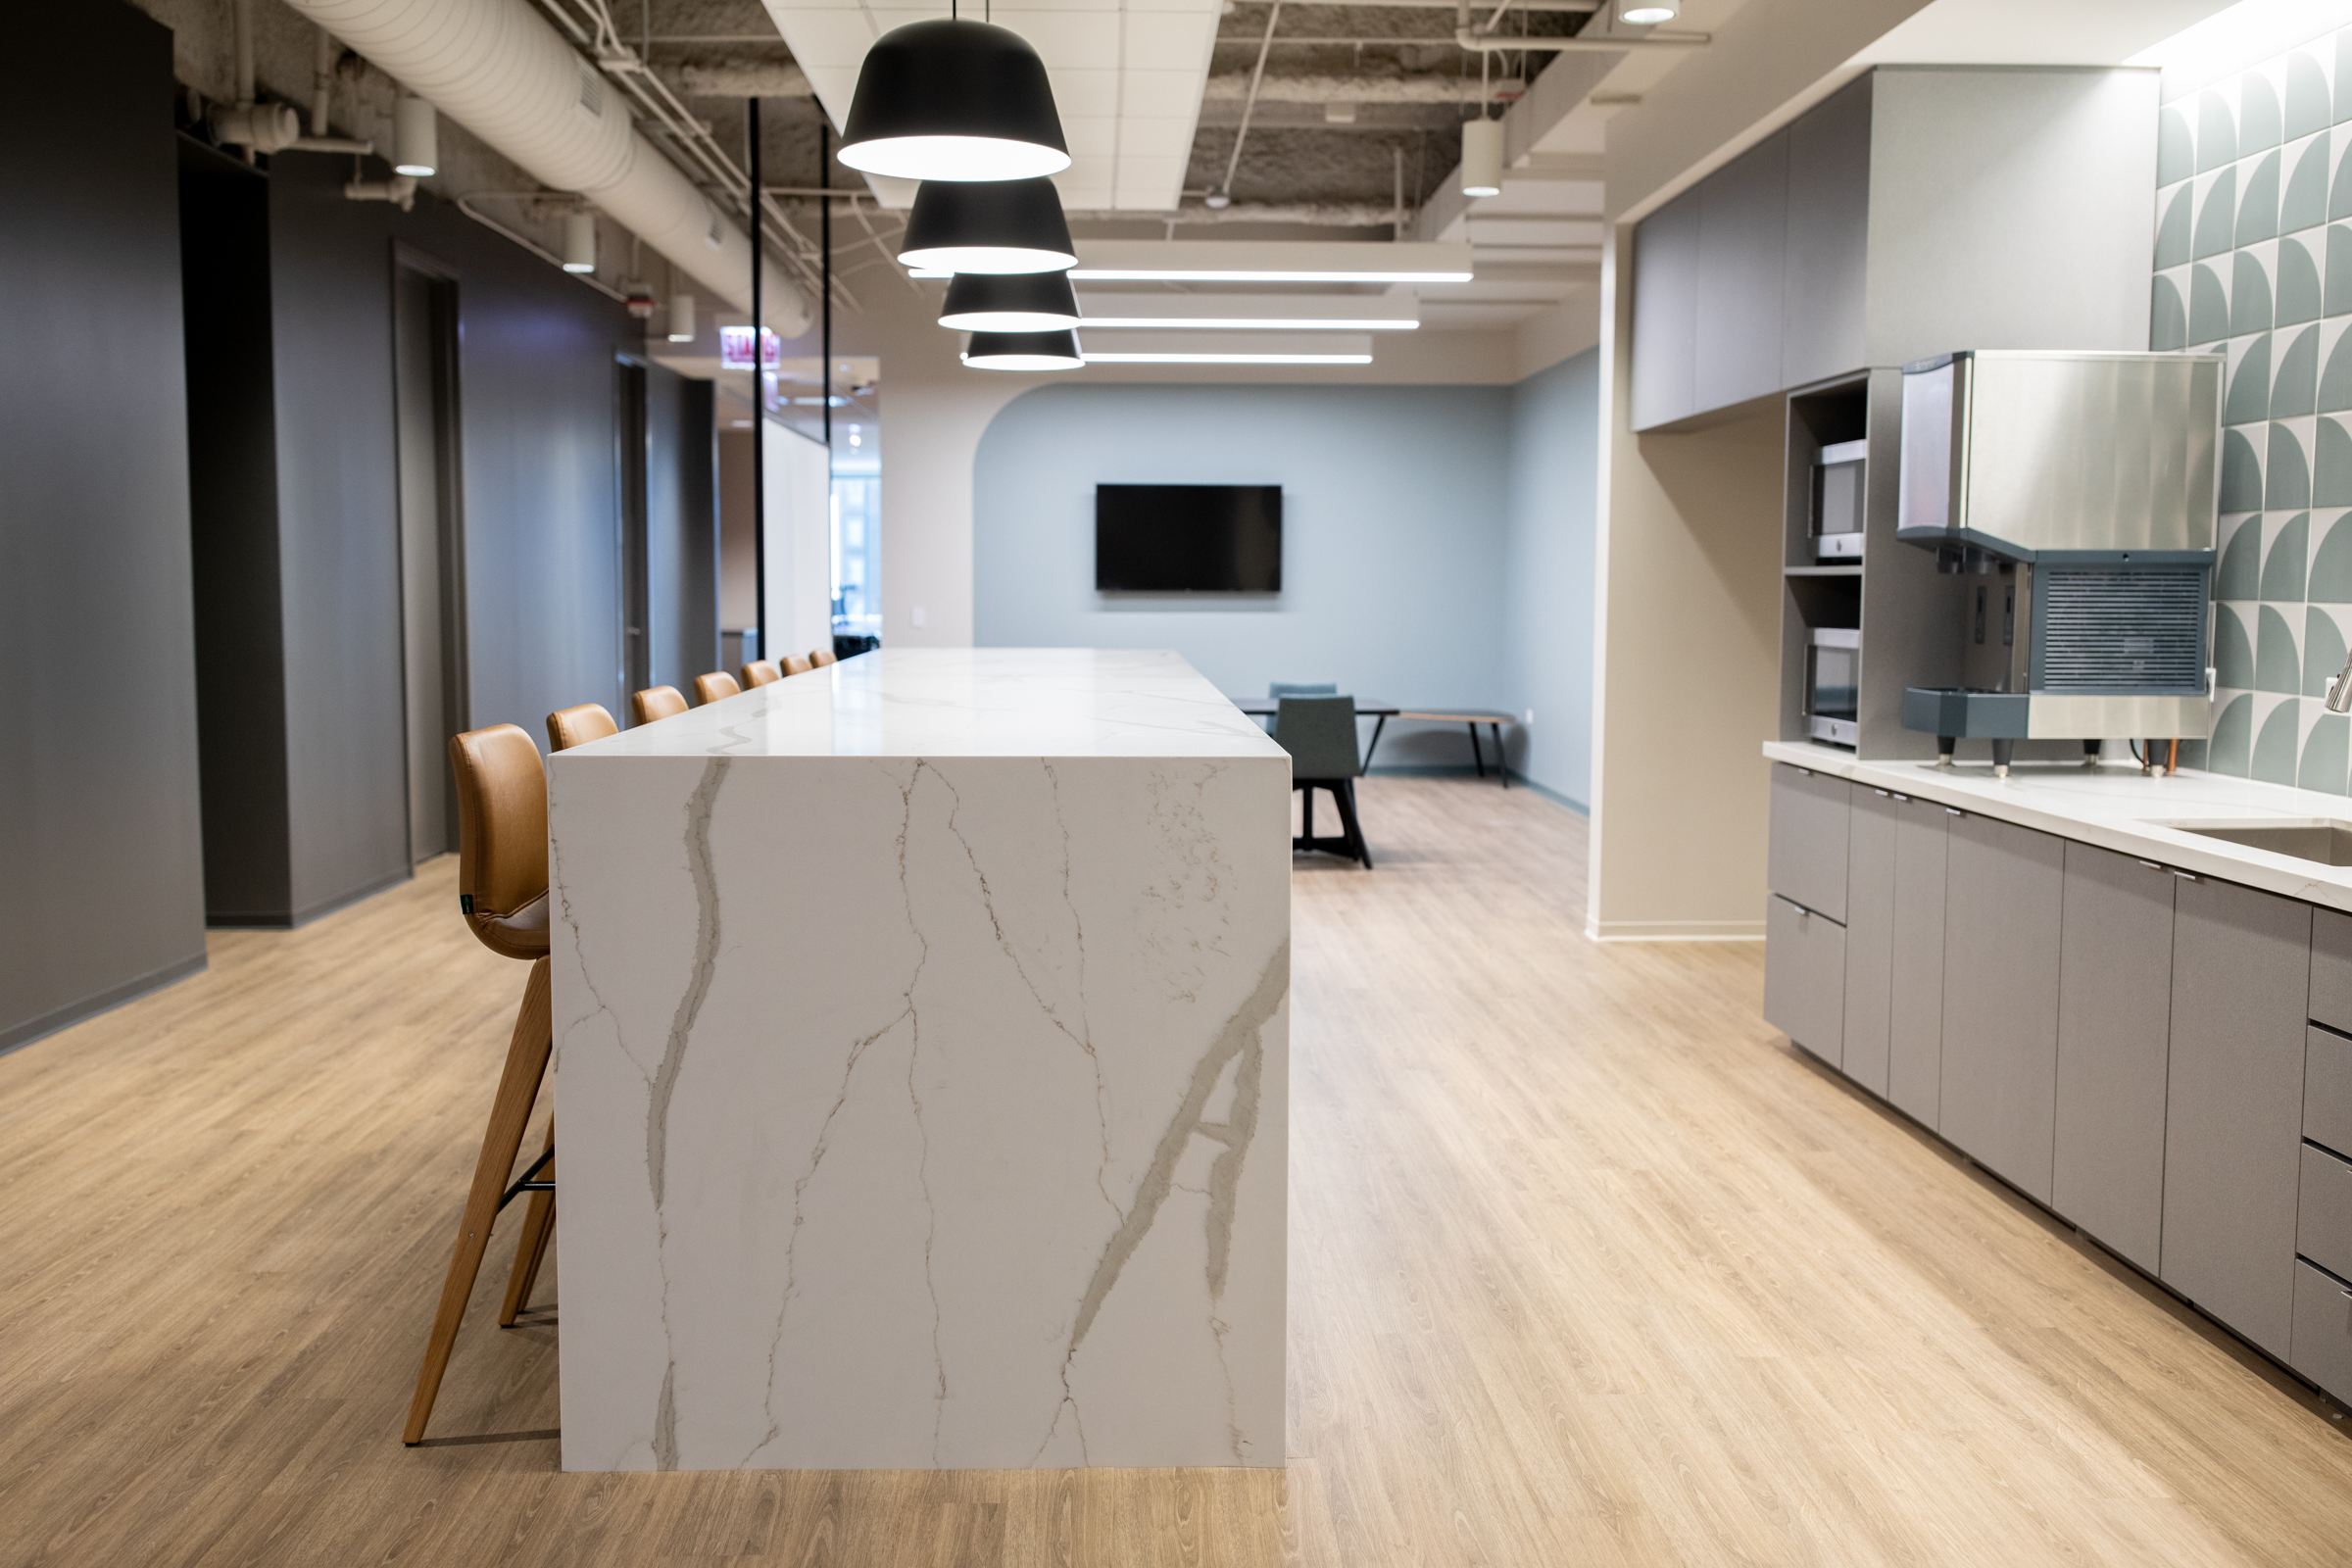 Pantry and island area at 181 W Madison.